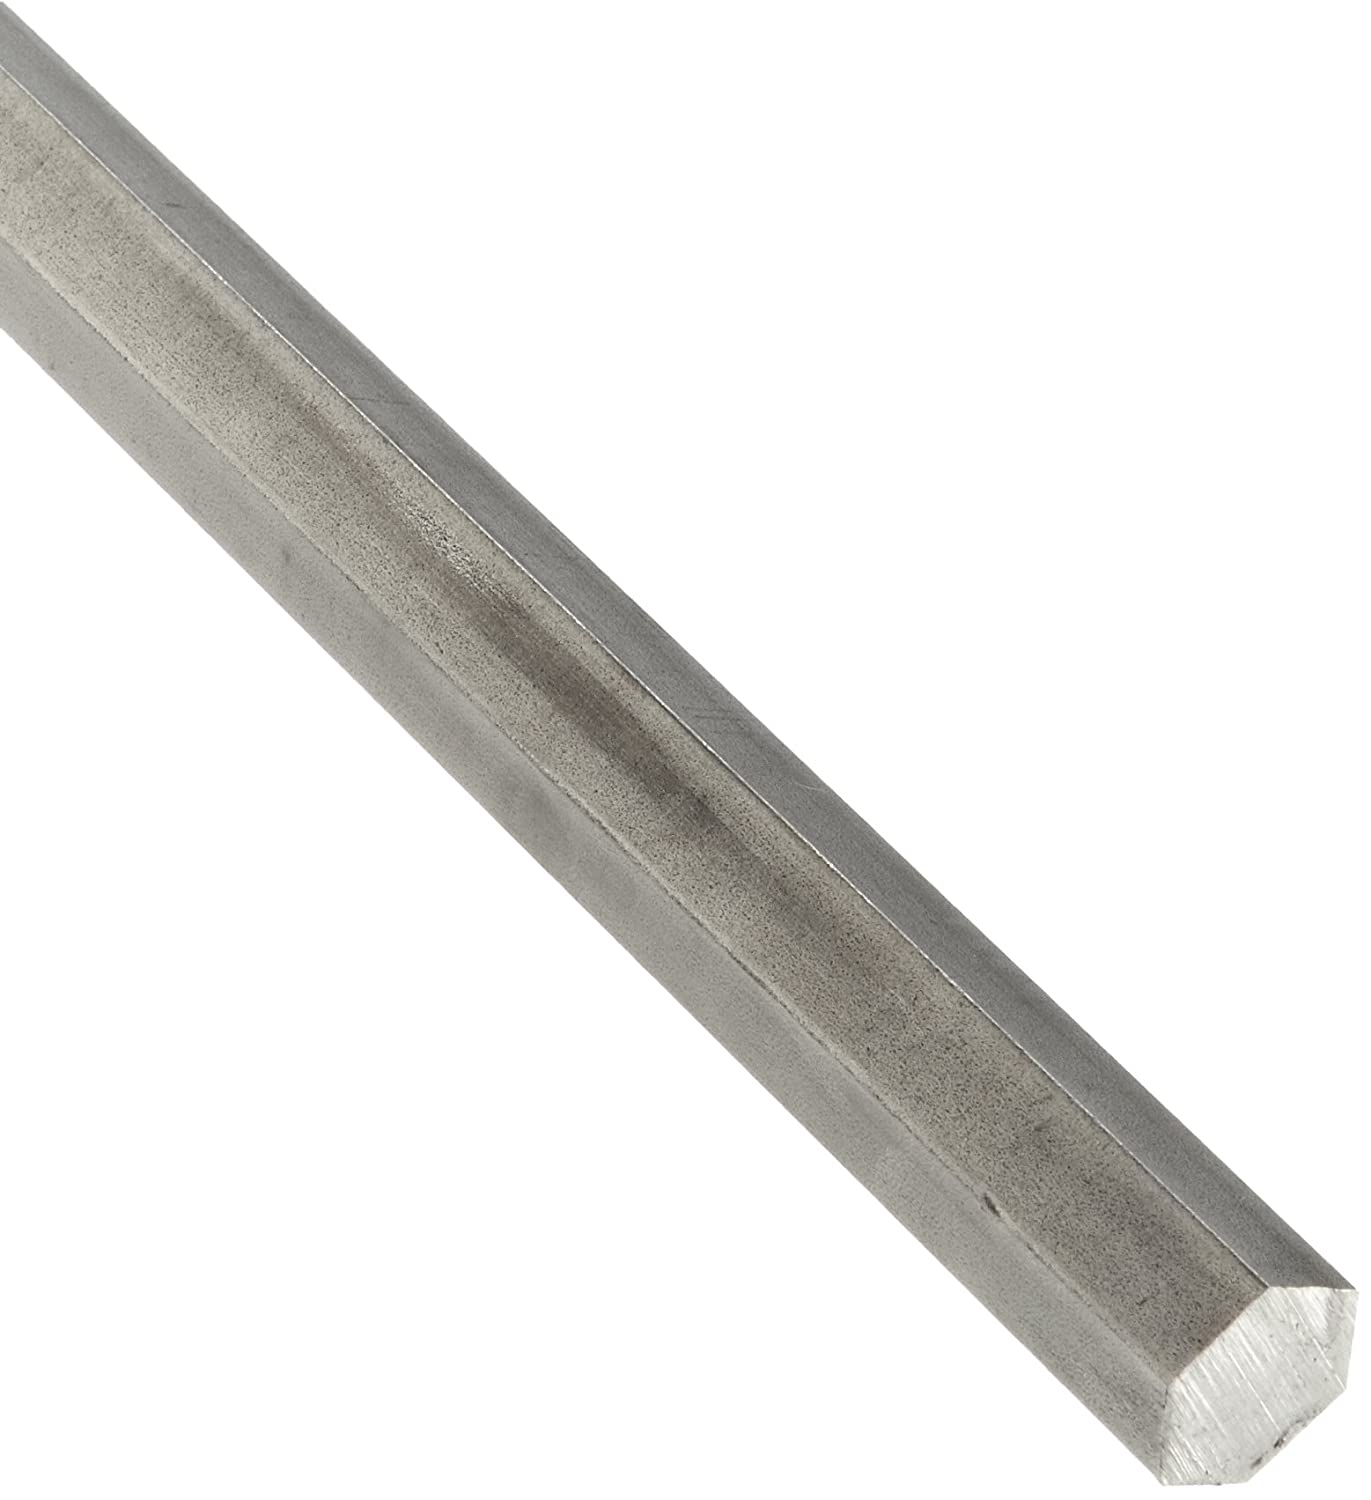 15-5 PH Stainless Steel Hex Bar Mill Annealed Temper Finish Annealed Precision Tolerance Unpolished AMS 2300//ASTM A564//ASTM A484 1 Across Flats 48 Length